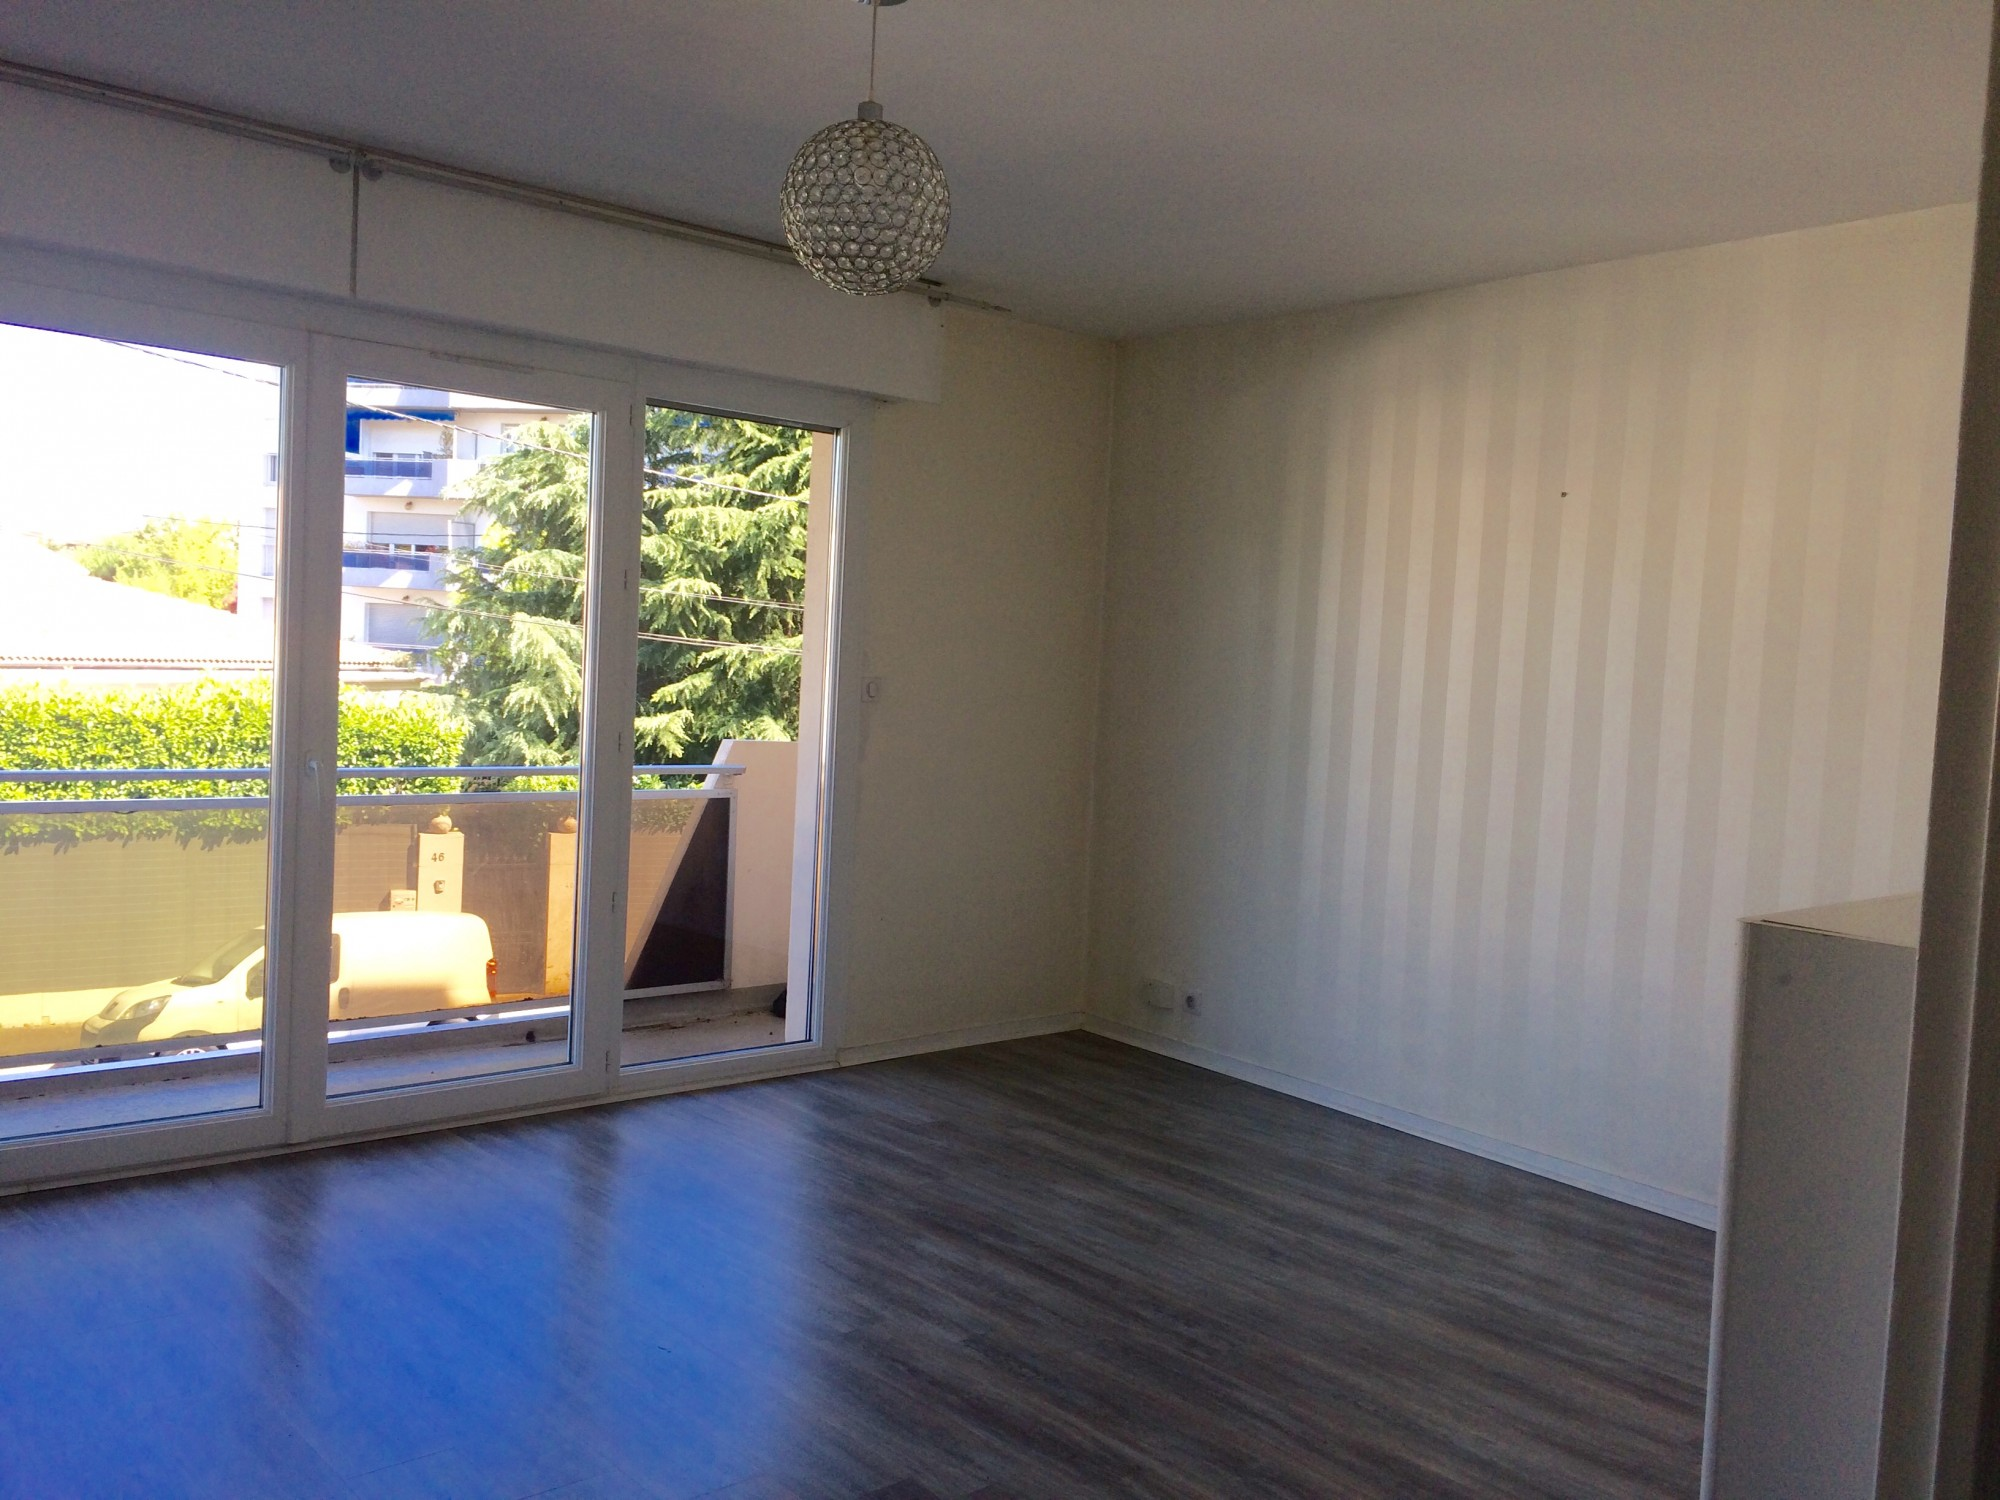 Location appartement t2 t2 f2 bordeaux caud ran bru for Location f2 bordeaux